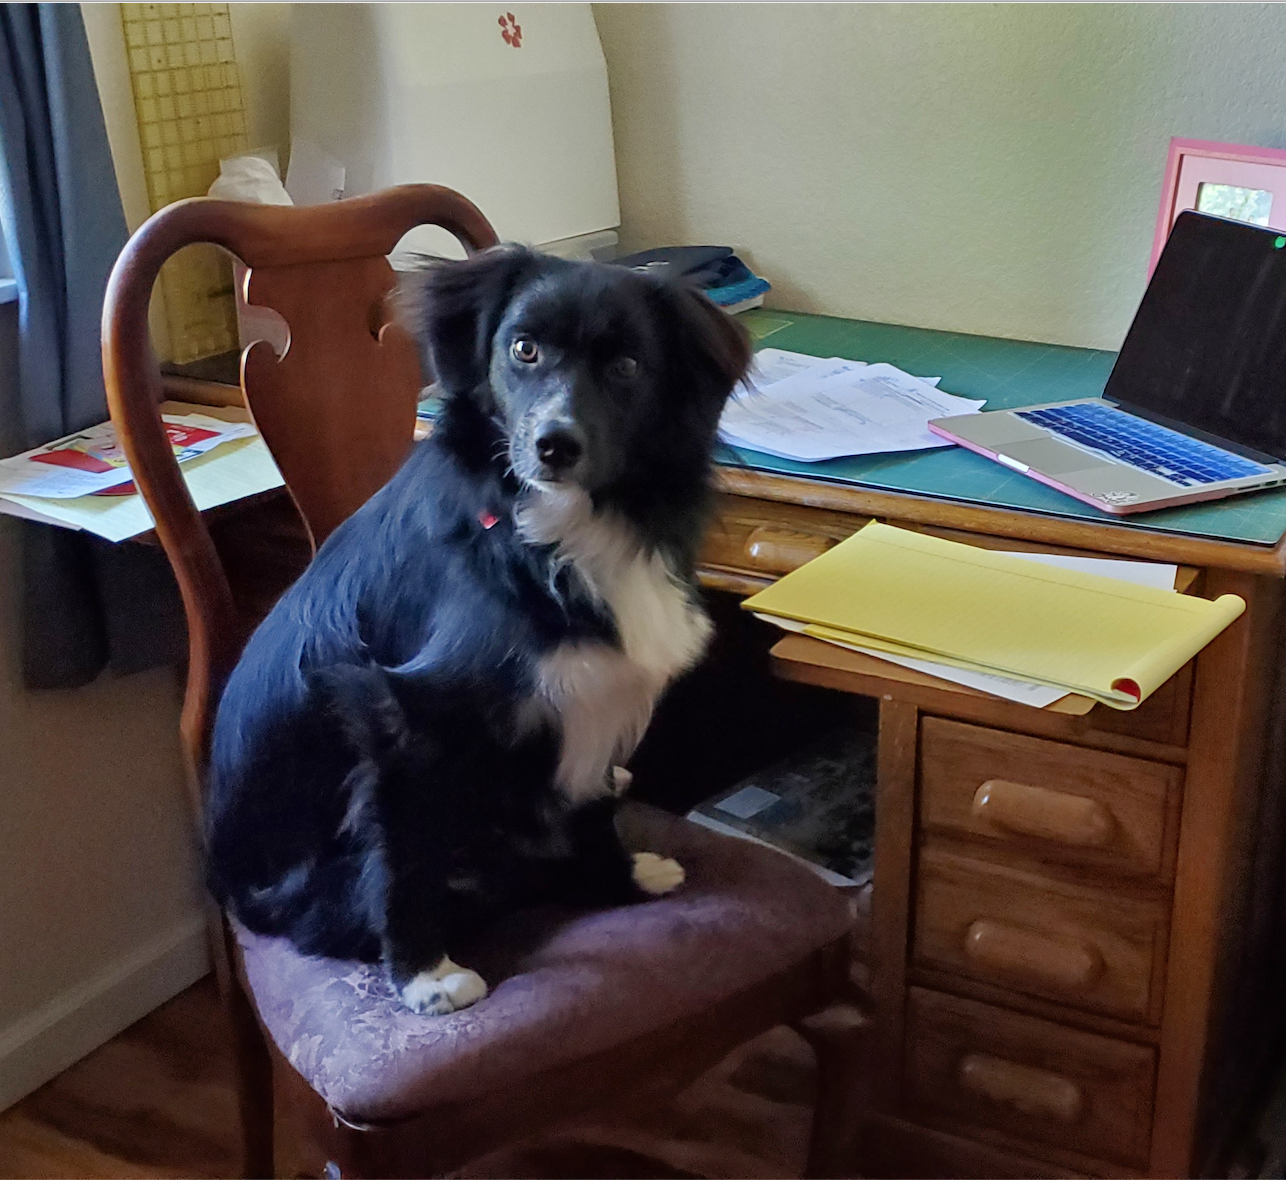 A border collie, sitting in a desk chair like he's going to be doing office work